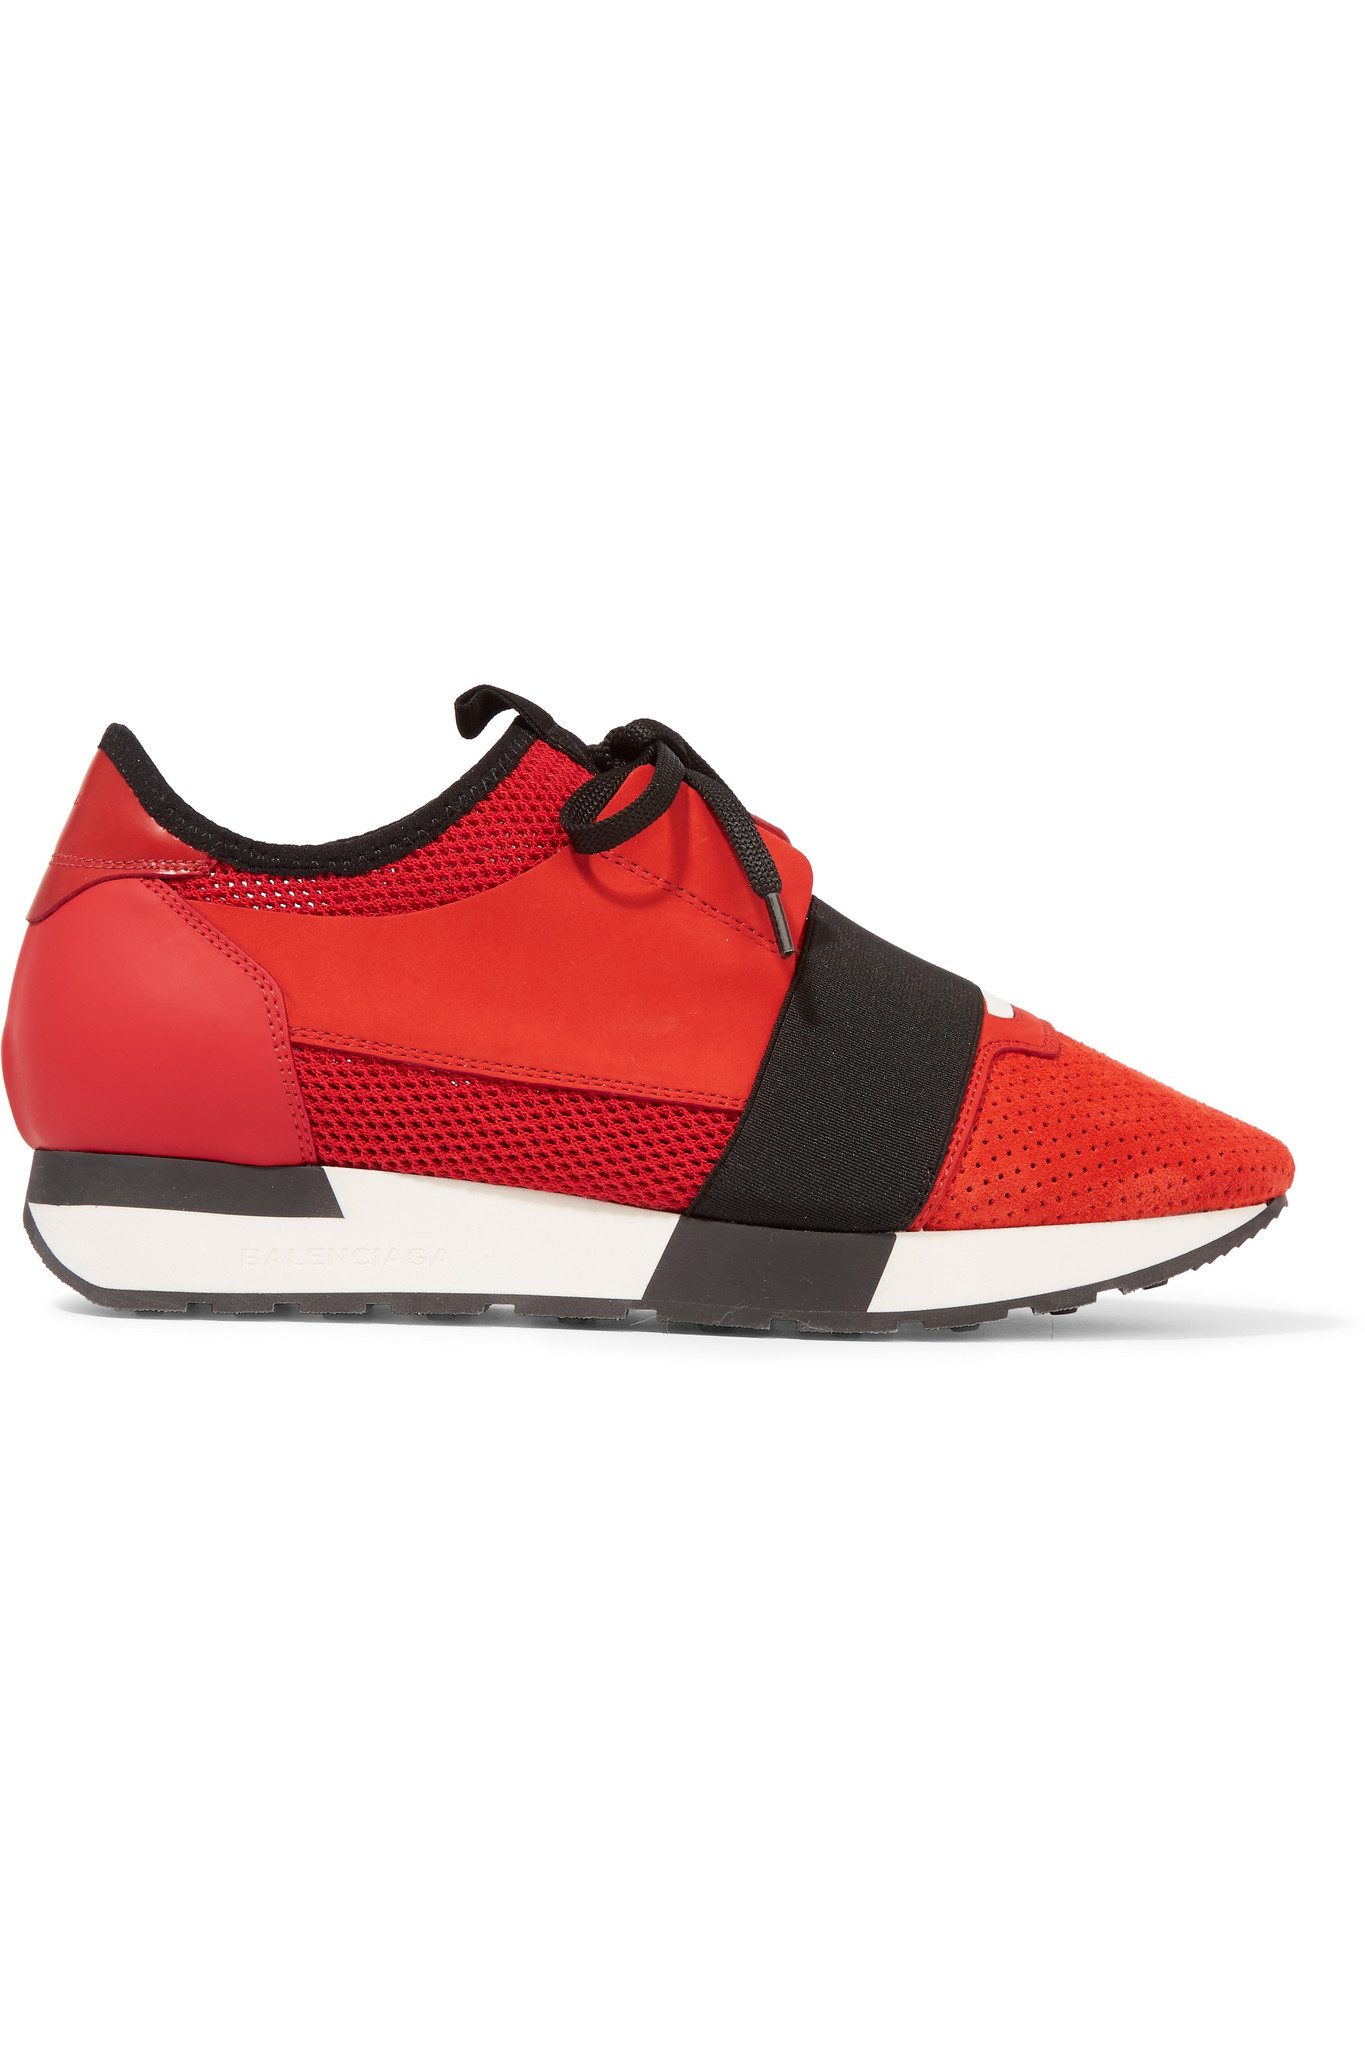 Balenciaga Race Runner Leather, Mesh, Suede And Neoprene Sneakers in ...